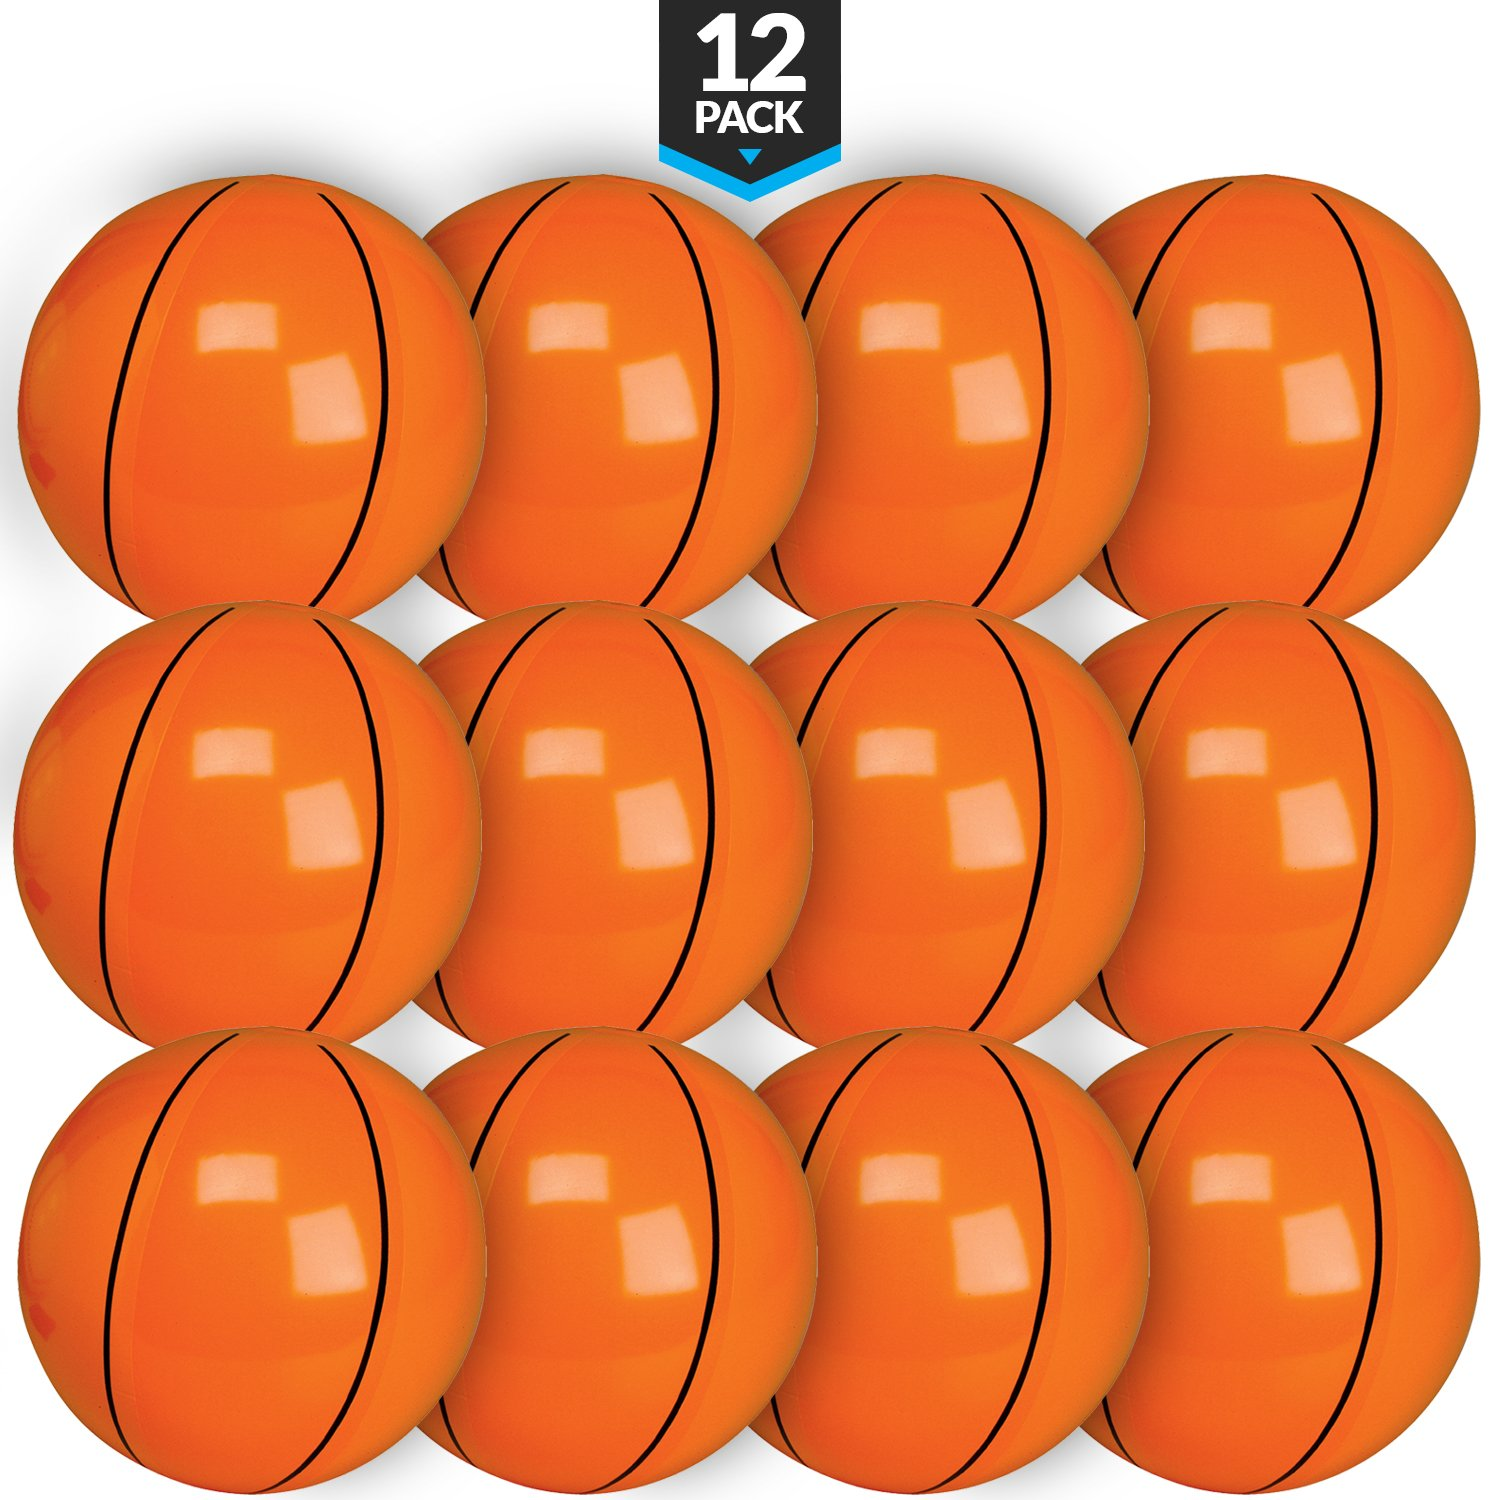 Bedwina Inflatable Basketballs (Pack of 12) 16 inch, Beach Balls for Sports Themed Birthday Parties, Beach Pool Party, Games, Favors by Bedwina